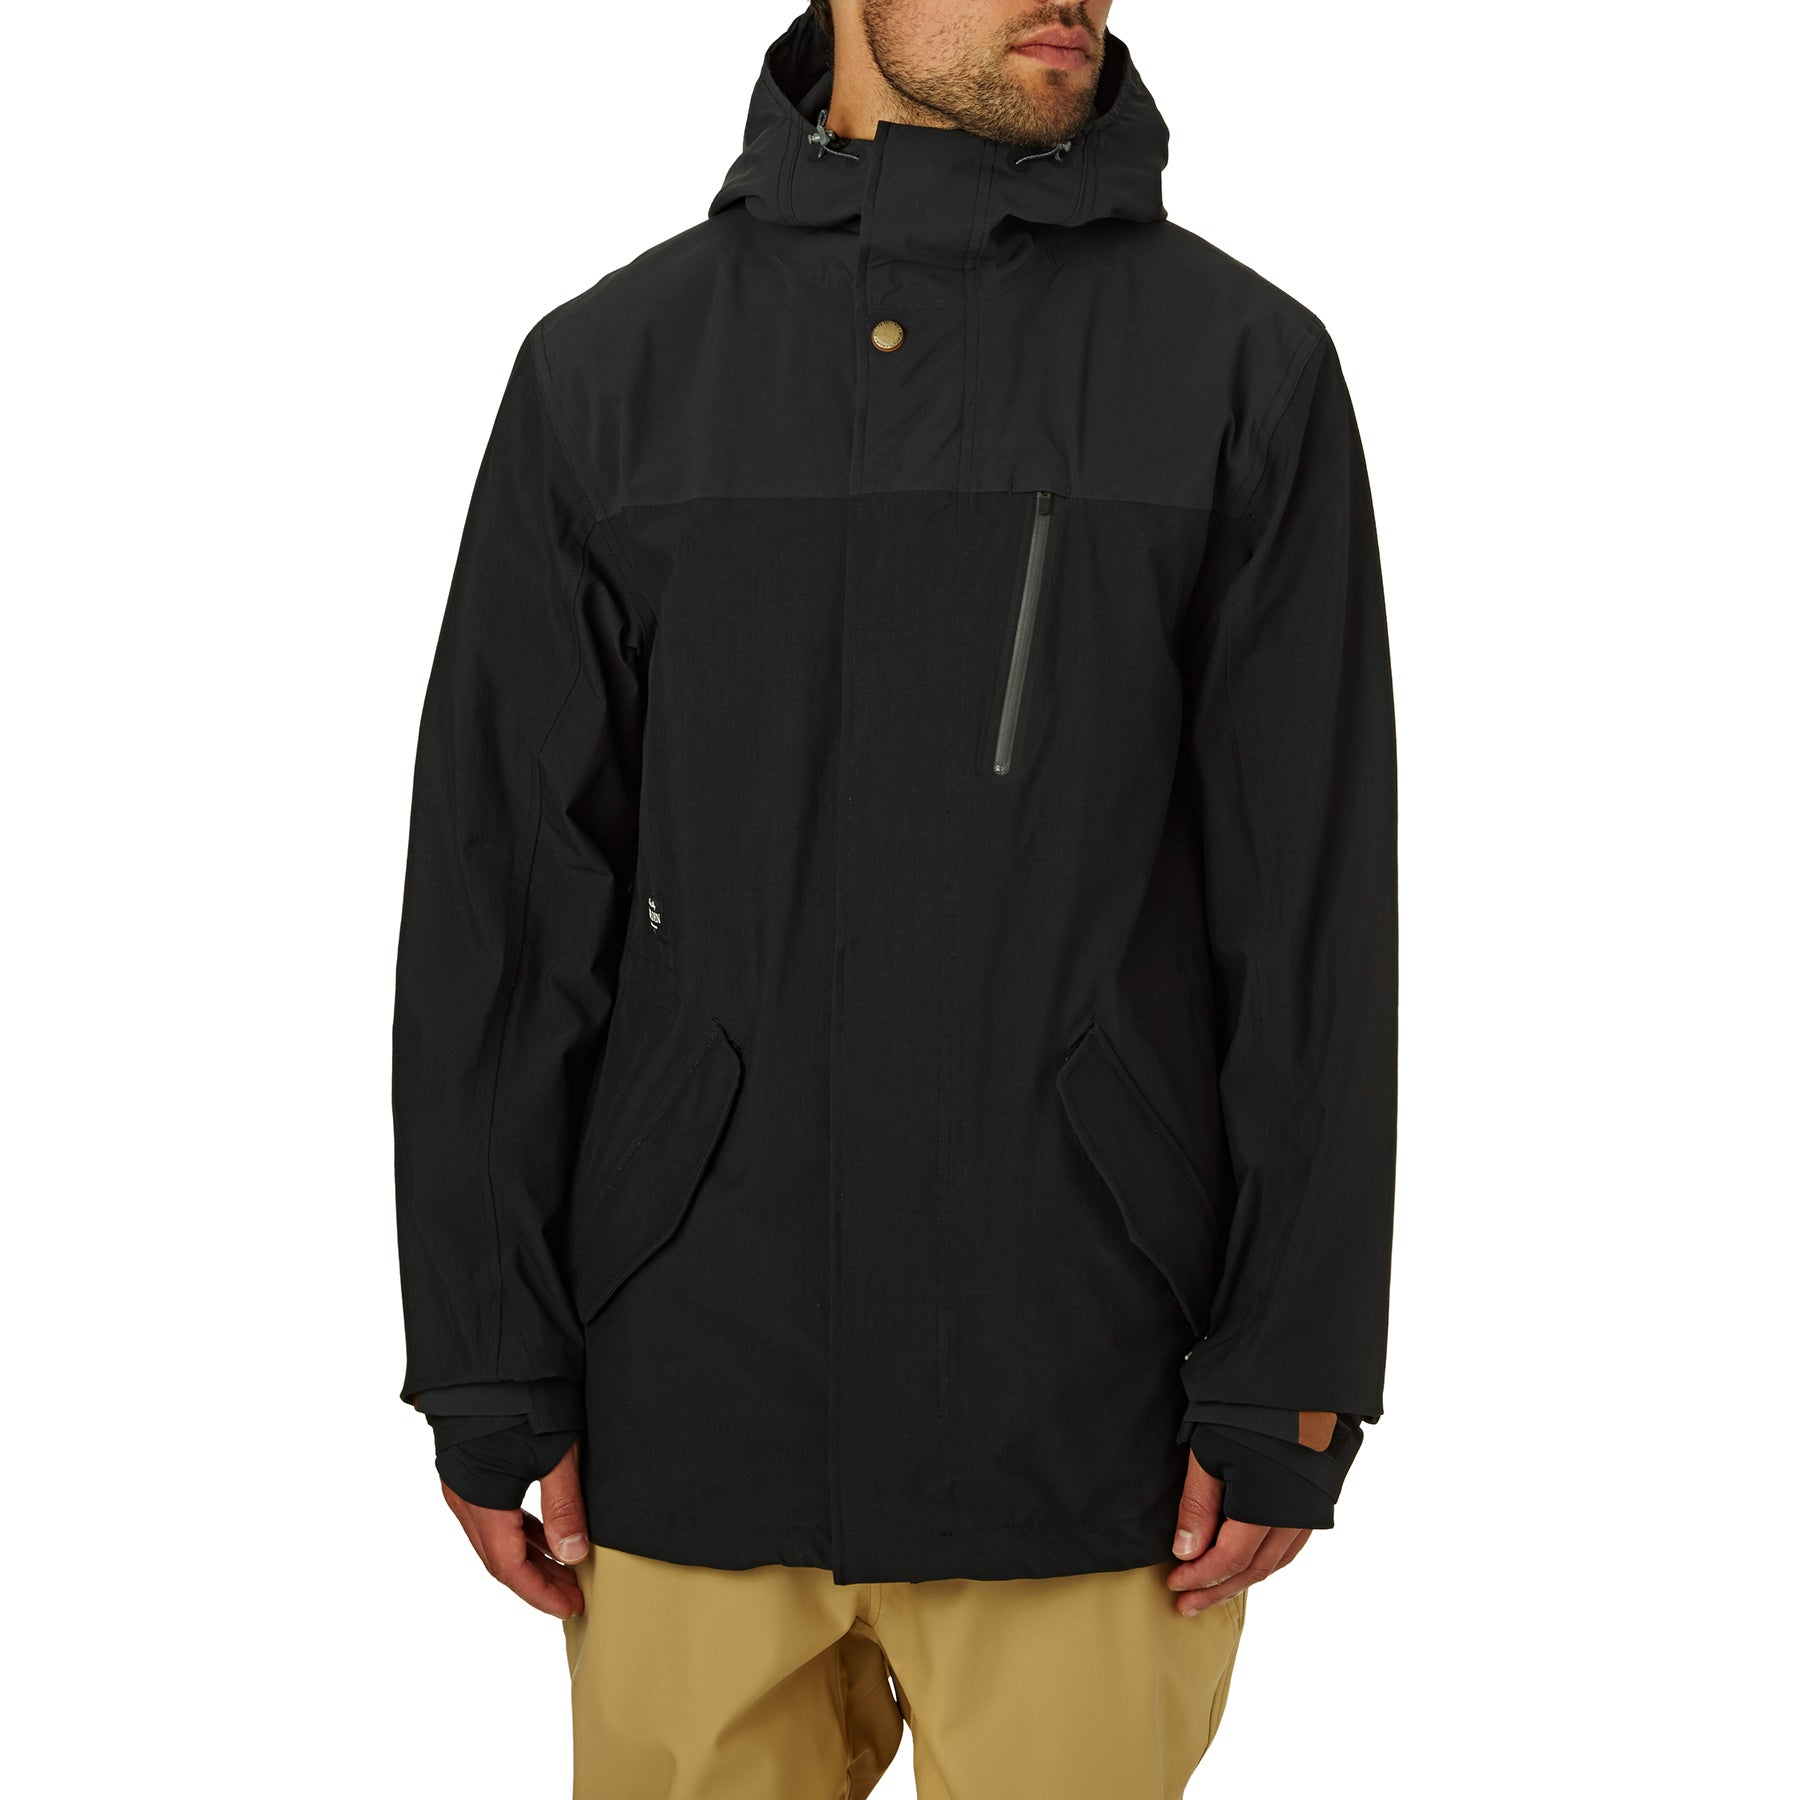 Holden M51 Fishtail Snow Jacket - Black